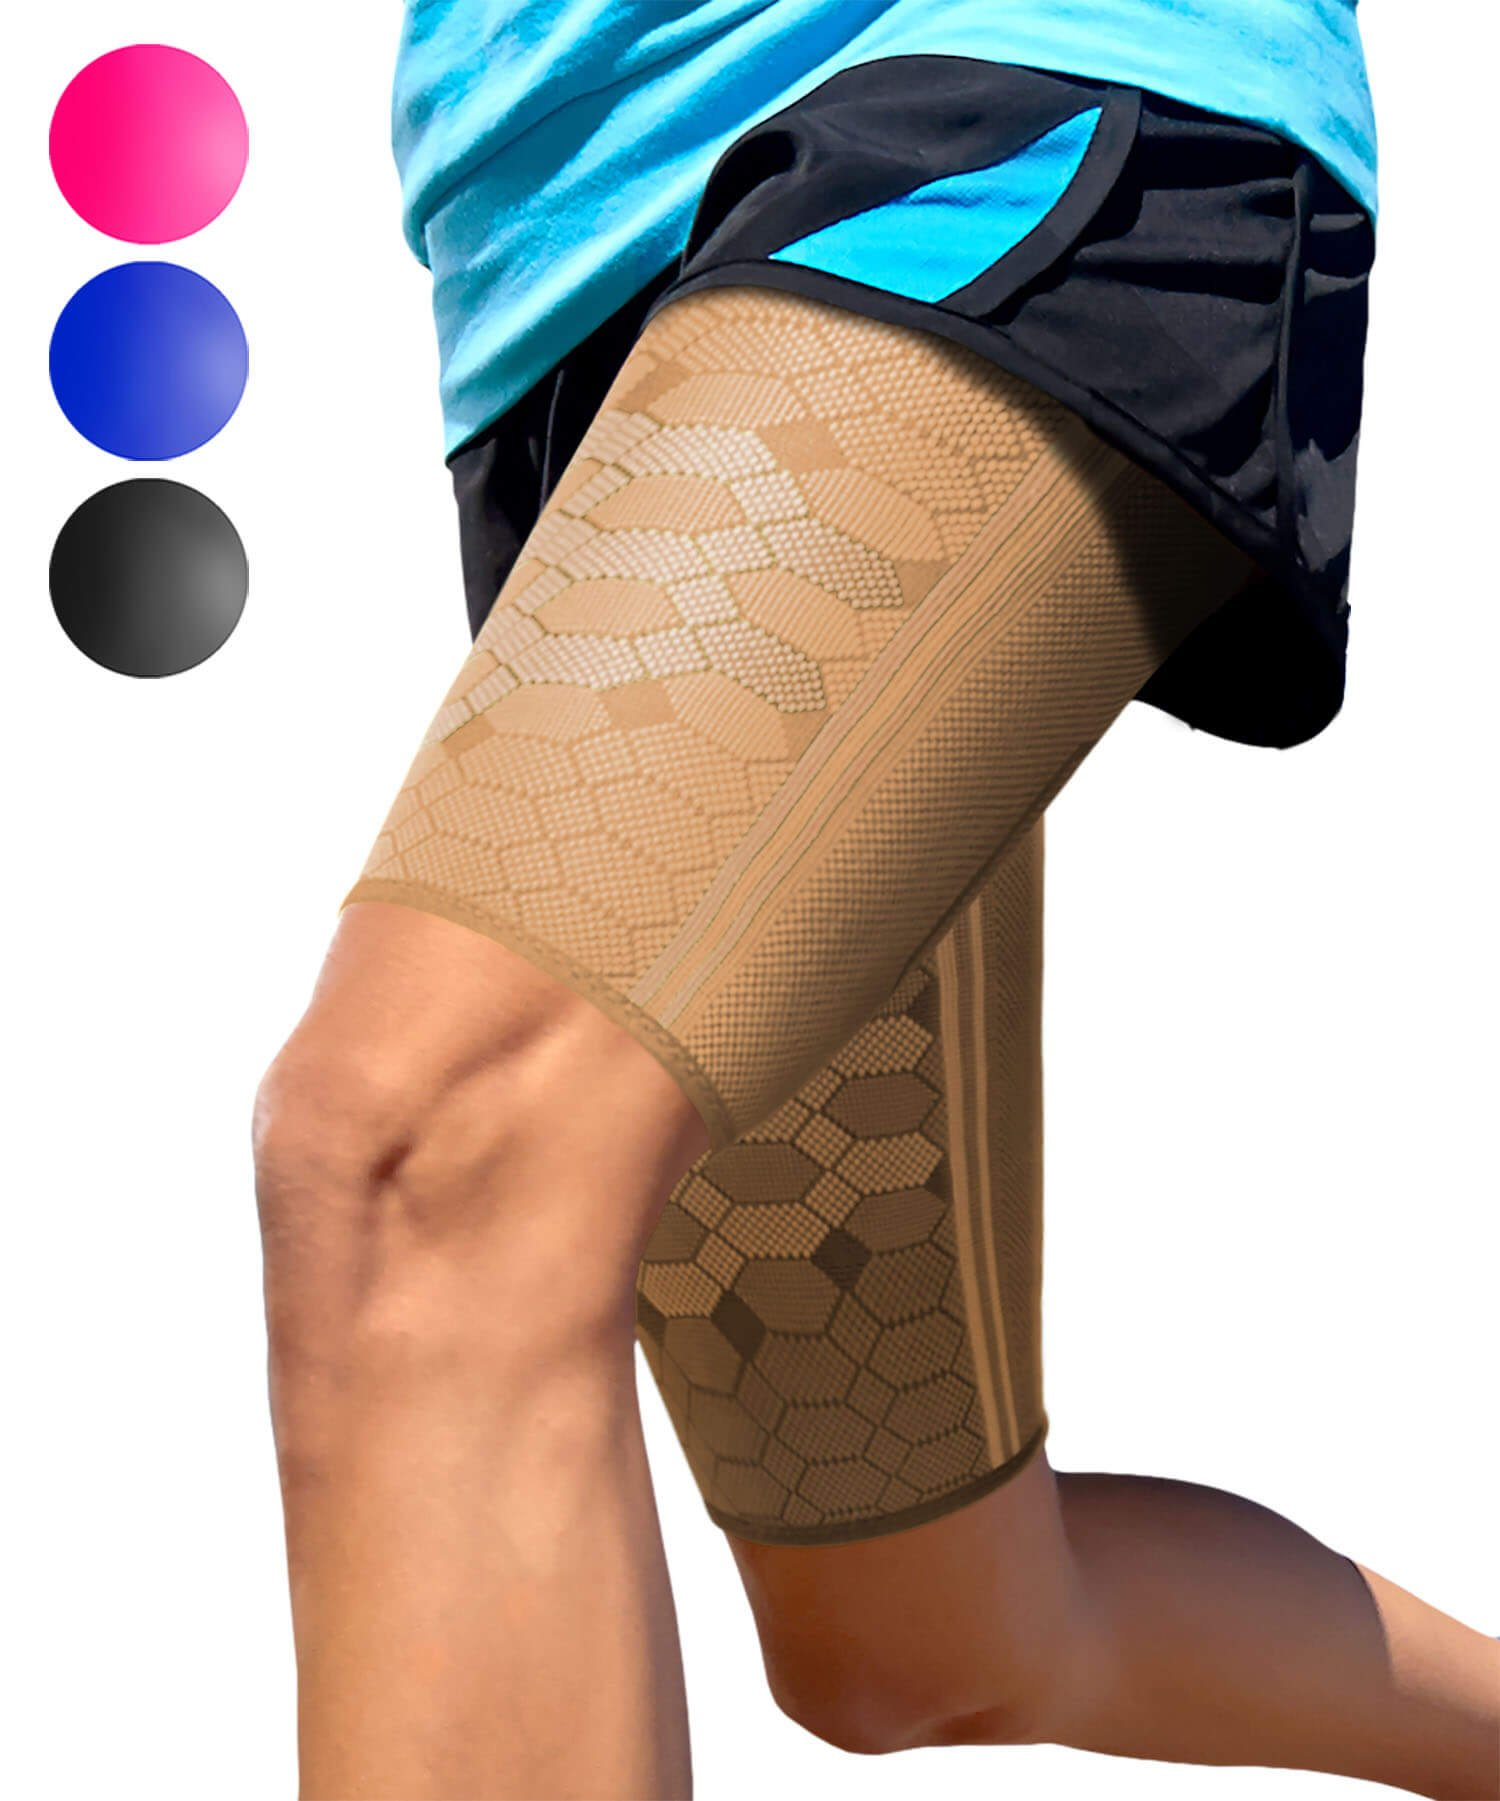 Sparthos Thigh Compression Sleeves (Pair) - Upper Leg Sleeves for Men and Women Support for Bruised Tender Strained Muscles Pulled Hamstring Quad Brace Pain Relief Sports Injury Recovery (Beige-S)